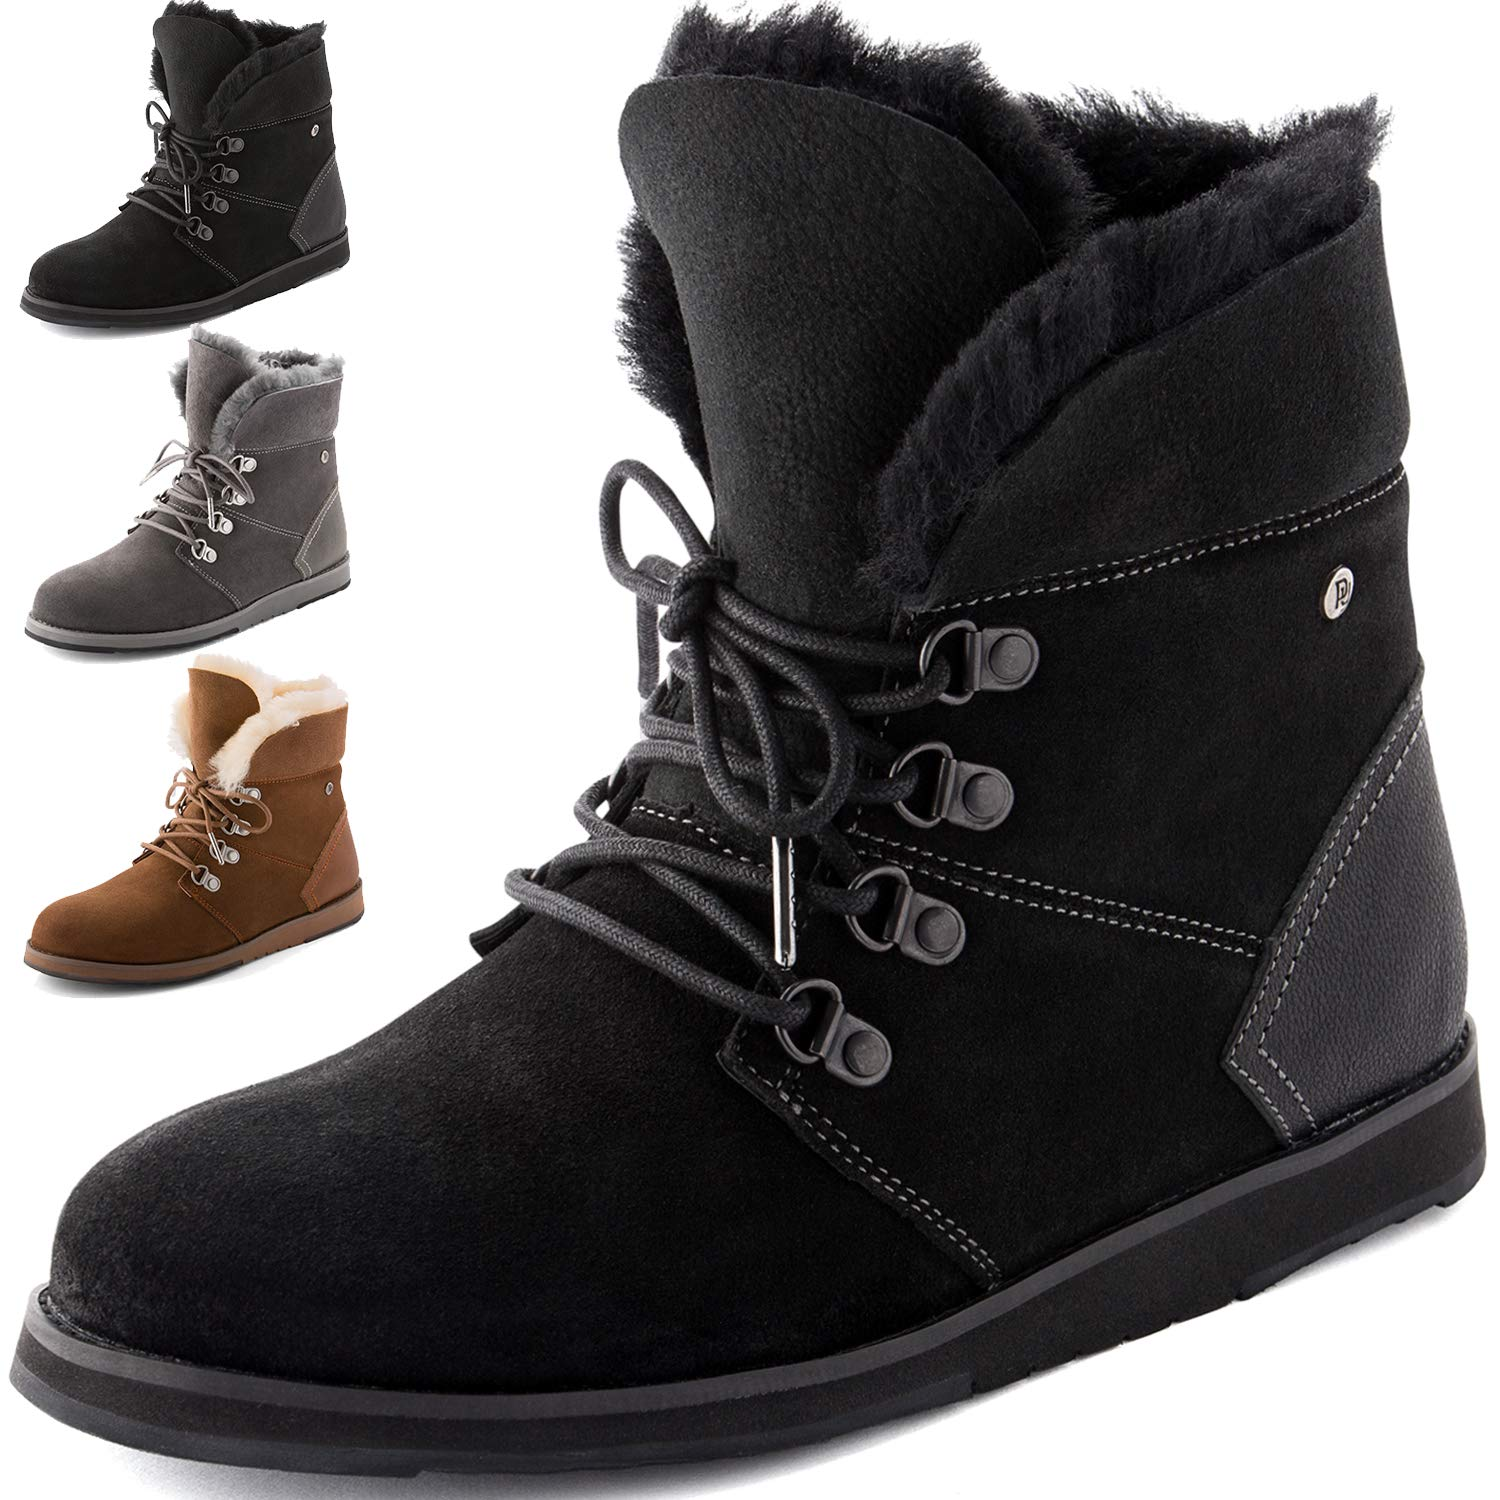 66ebb03942f Winter Boots for Women, Waterproof Sheepskin Shoes, High Density EVA Sole  (Flexible), Natural Sheep Wool, Leather Booties